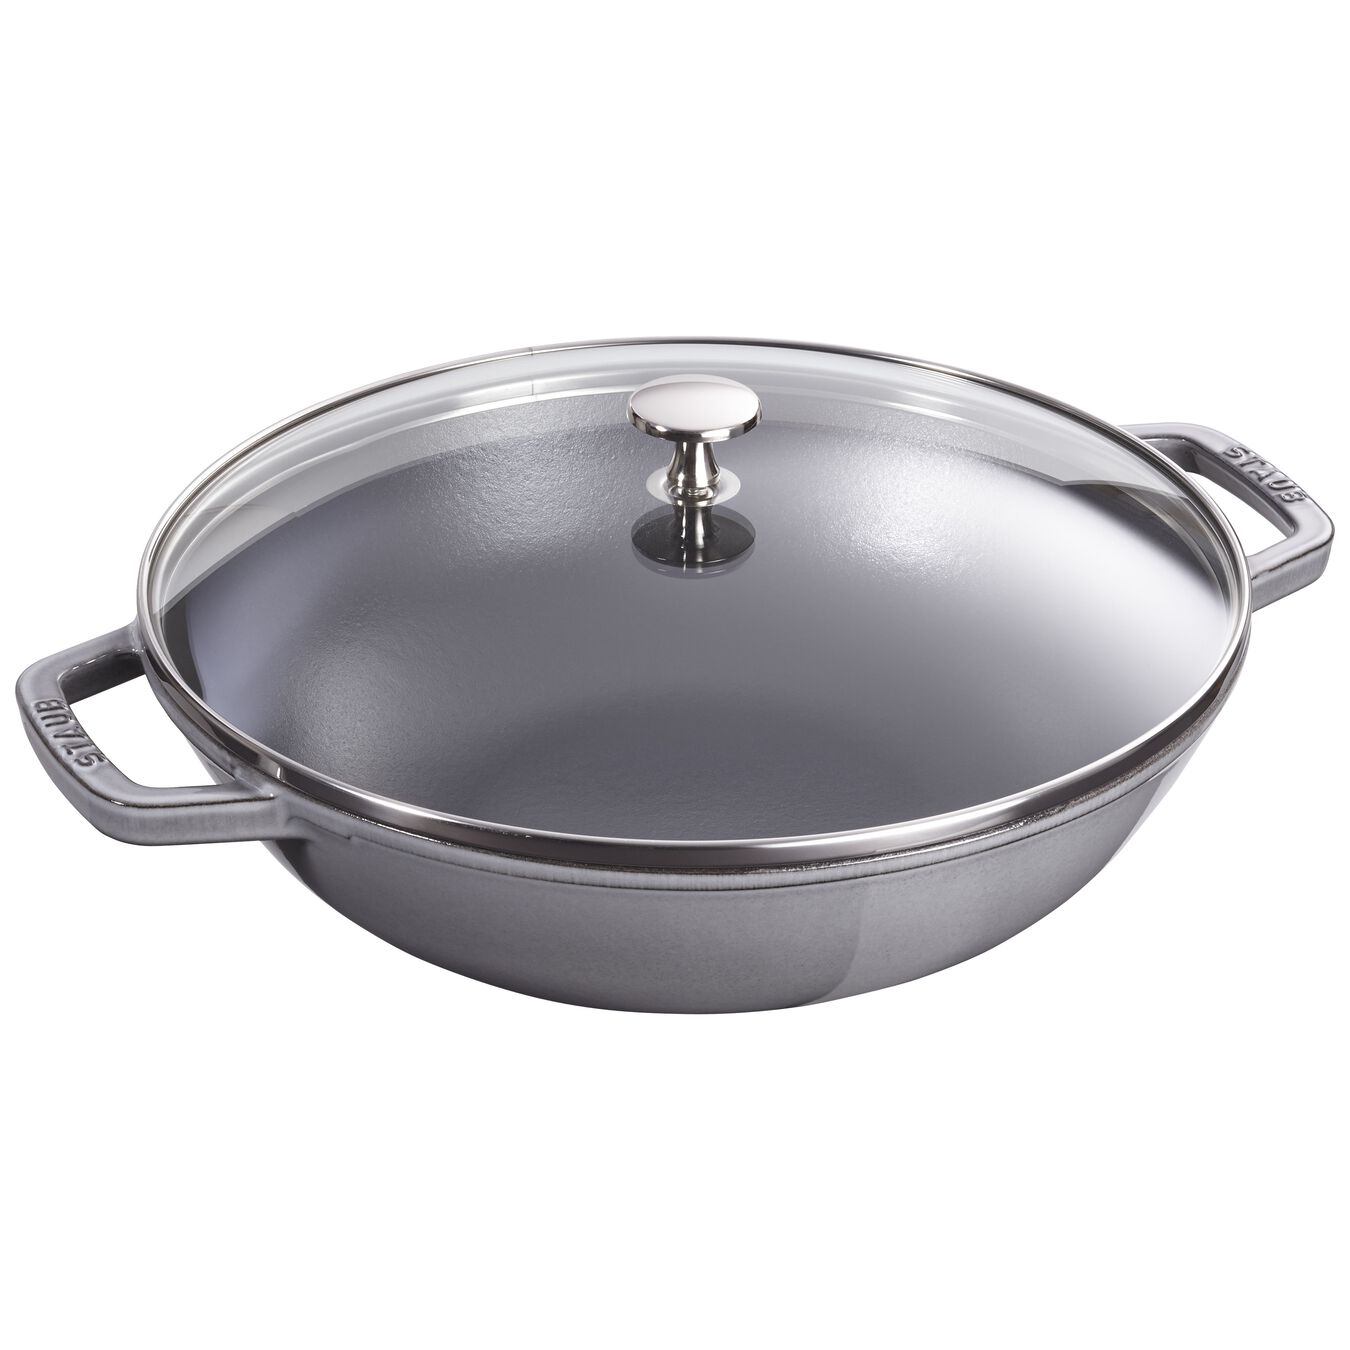 4.5-qt Perfect Pan - Visual Imperfections - Graphite Grey,,large 1